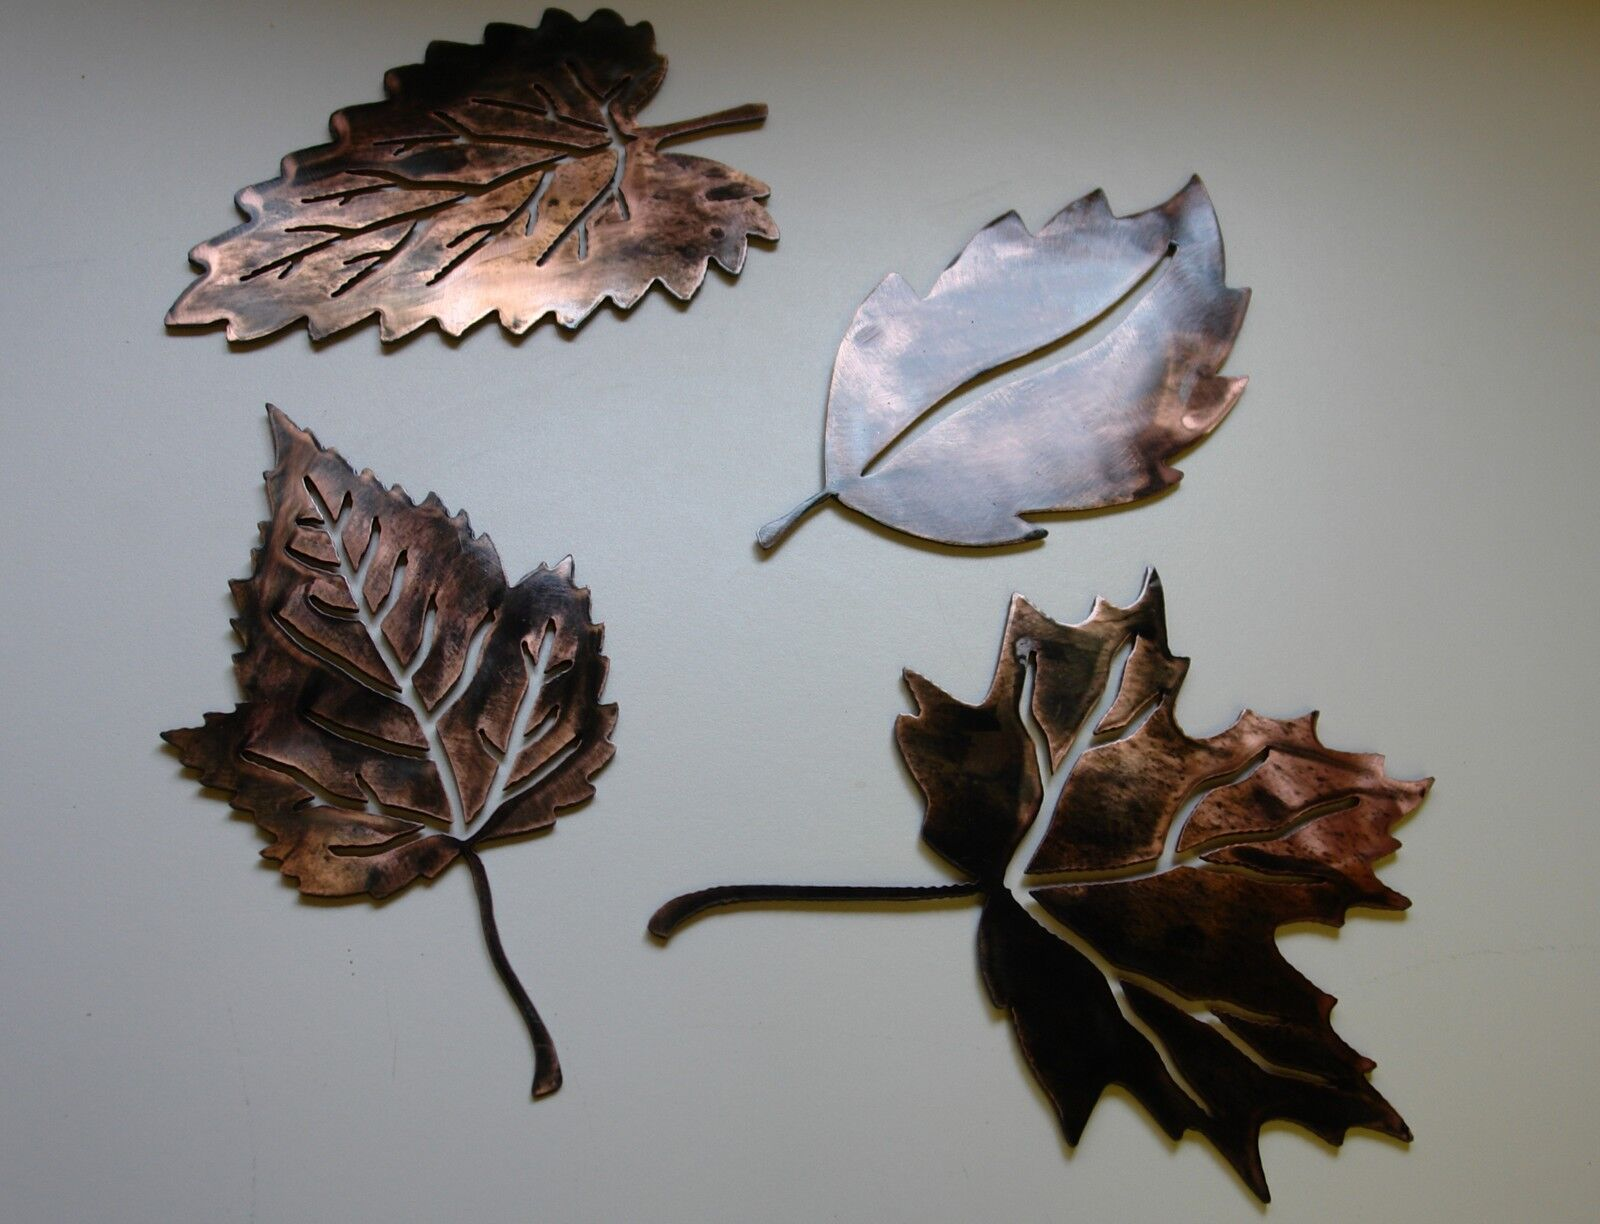 Metal Wall Art Leafs 4 Each Copper/bronze Plated By Hgmw